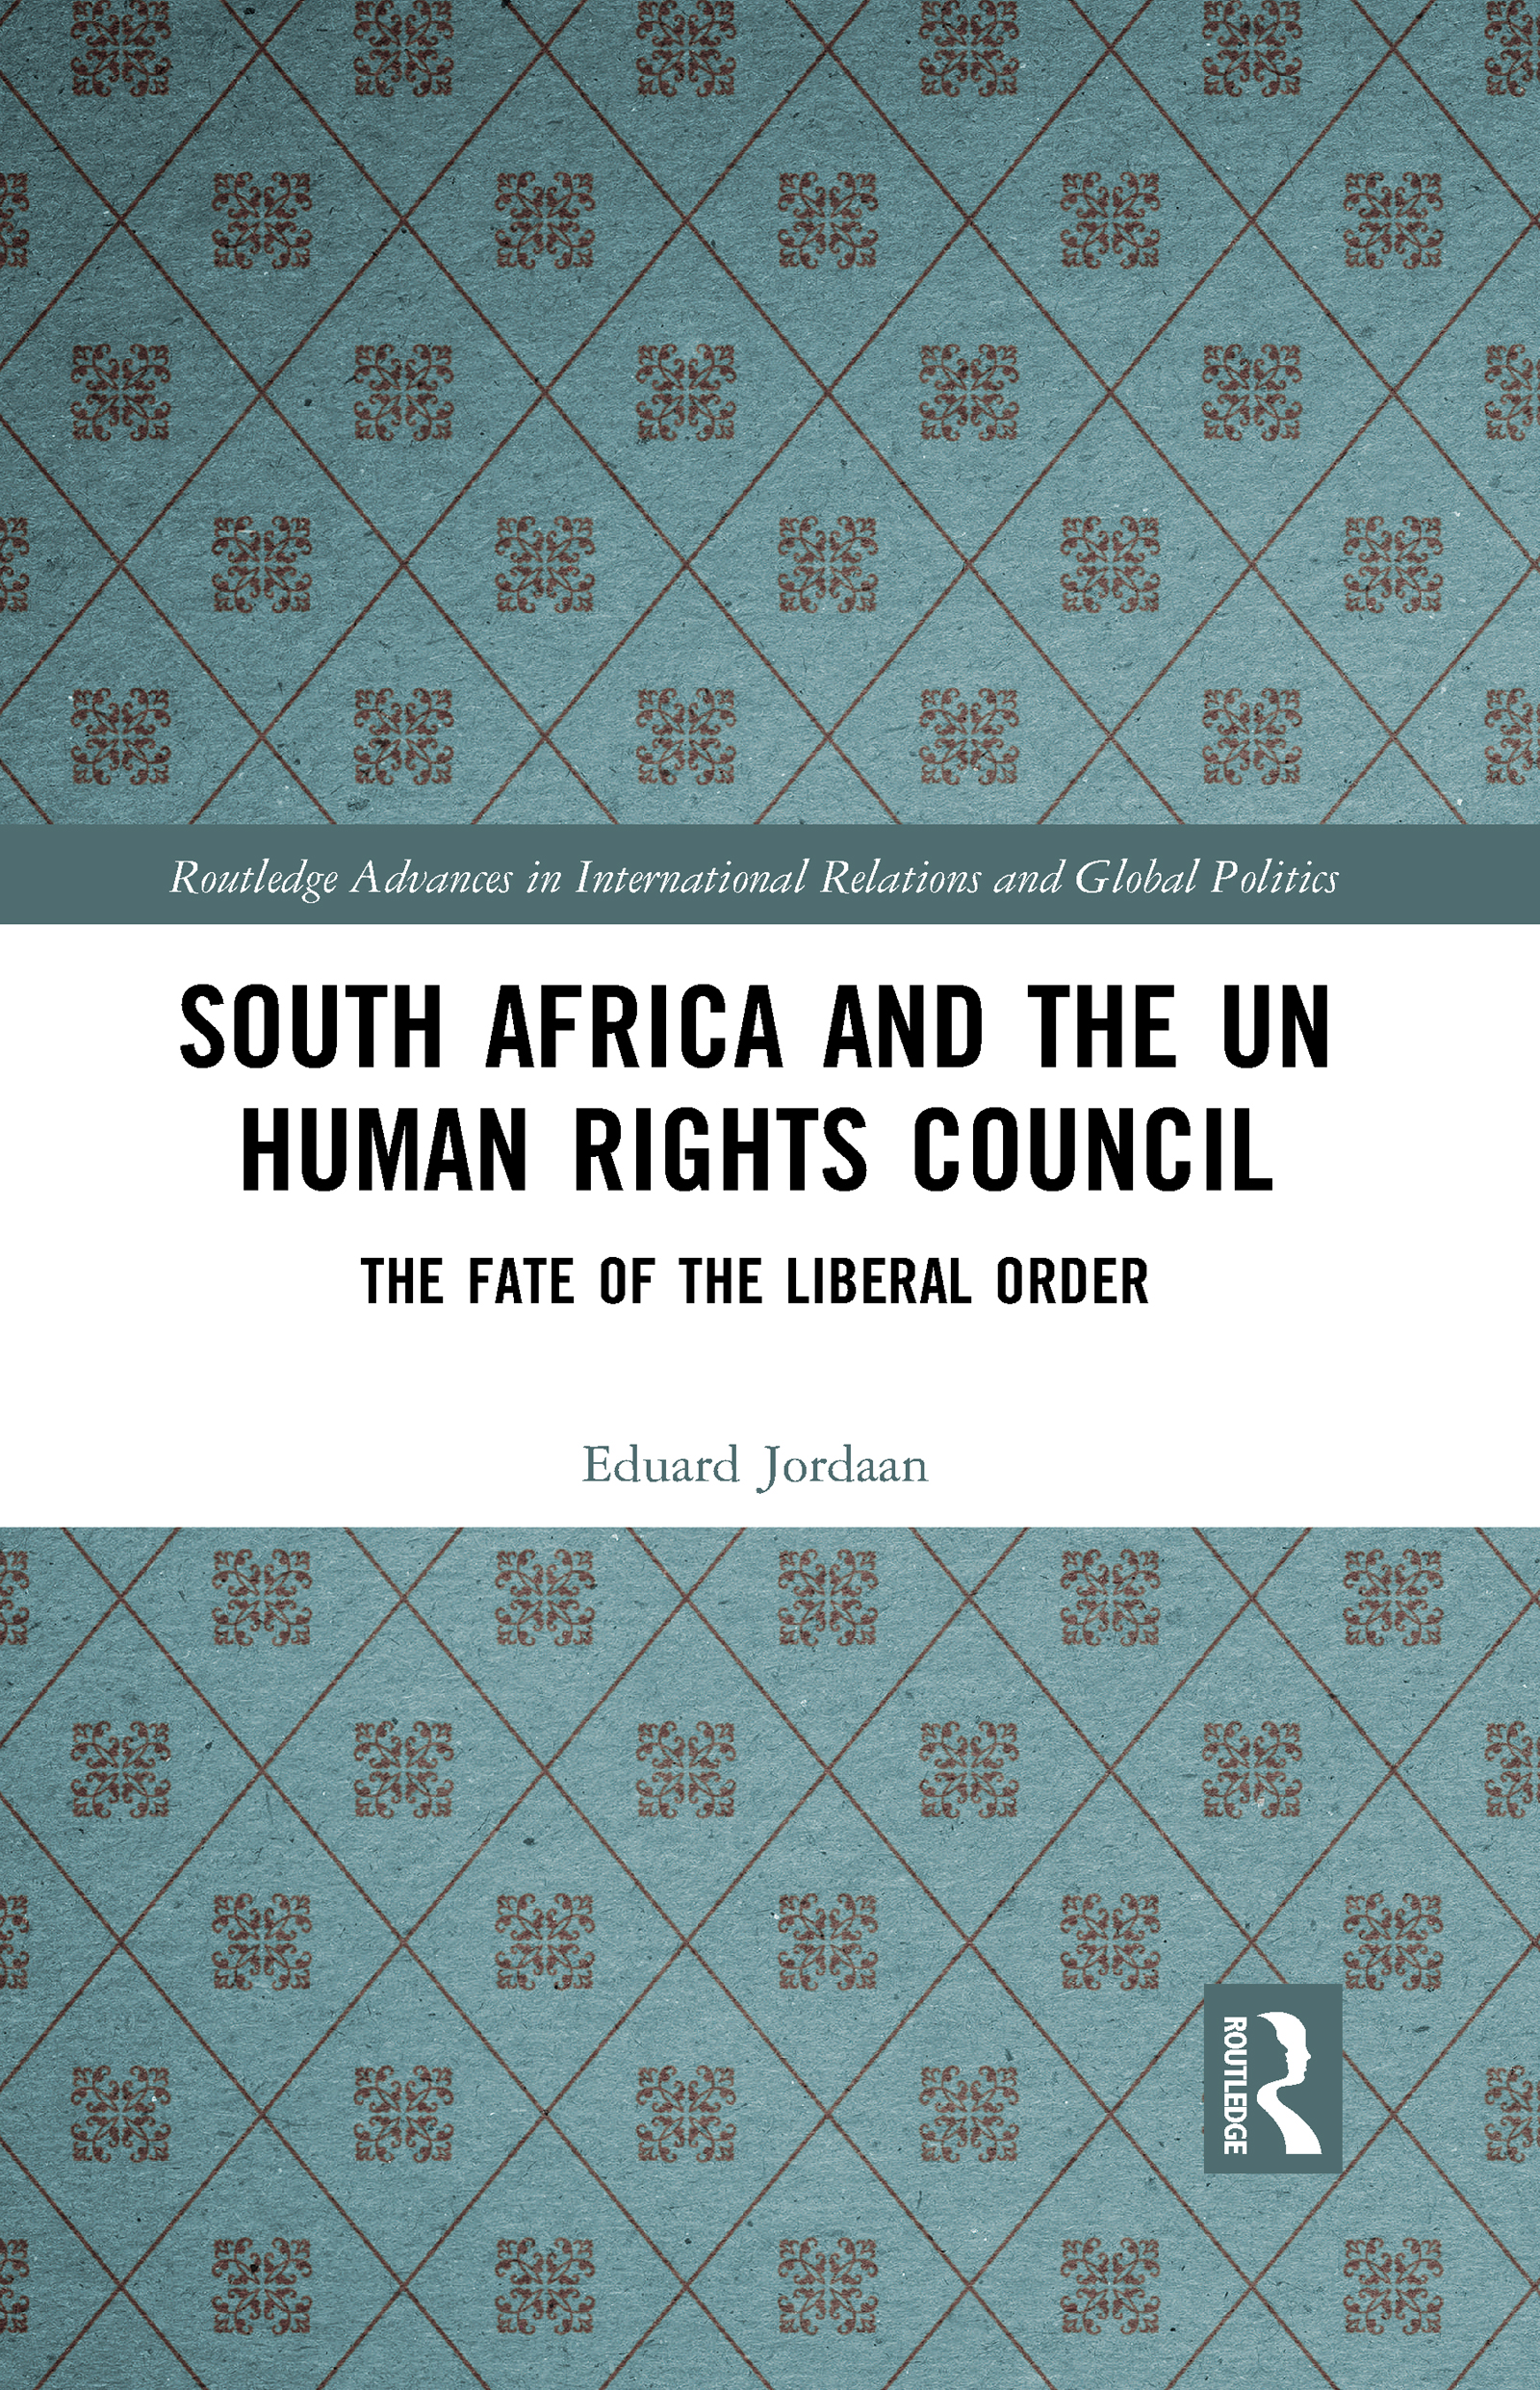 South Africa and the UN Human Rights Council